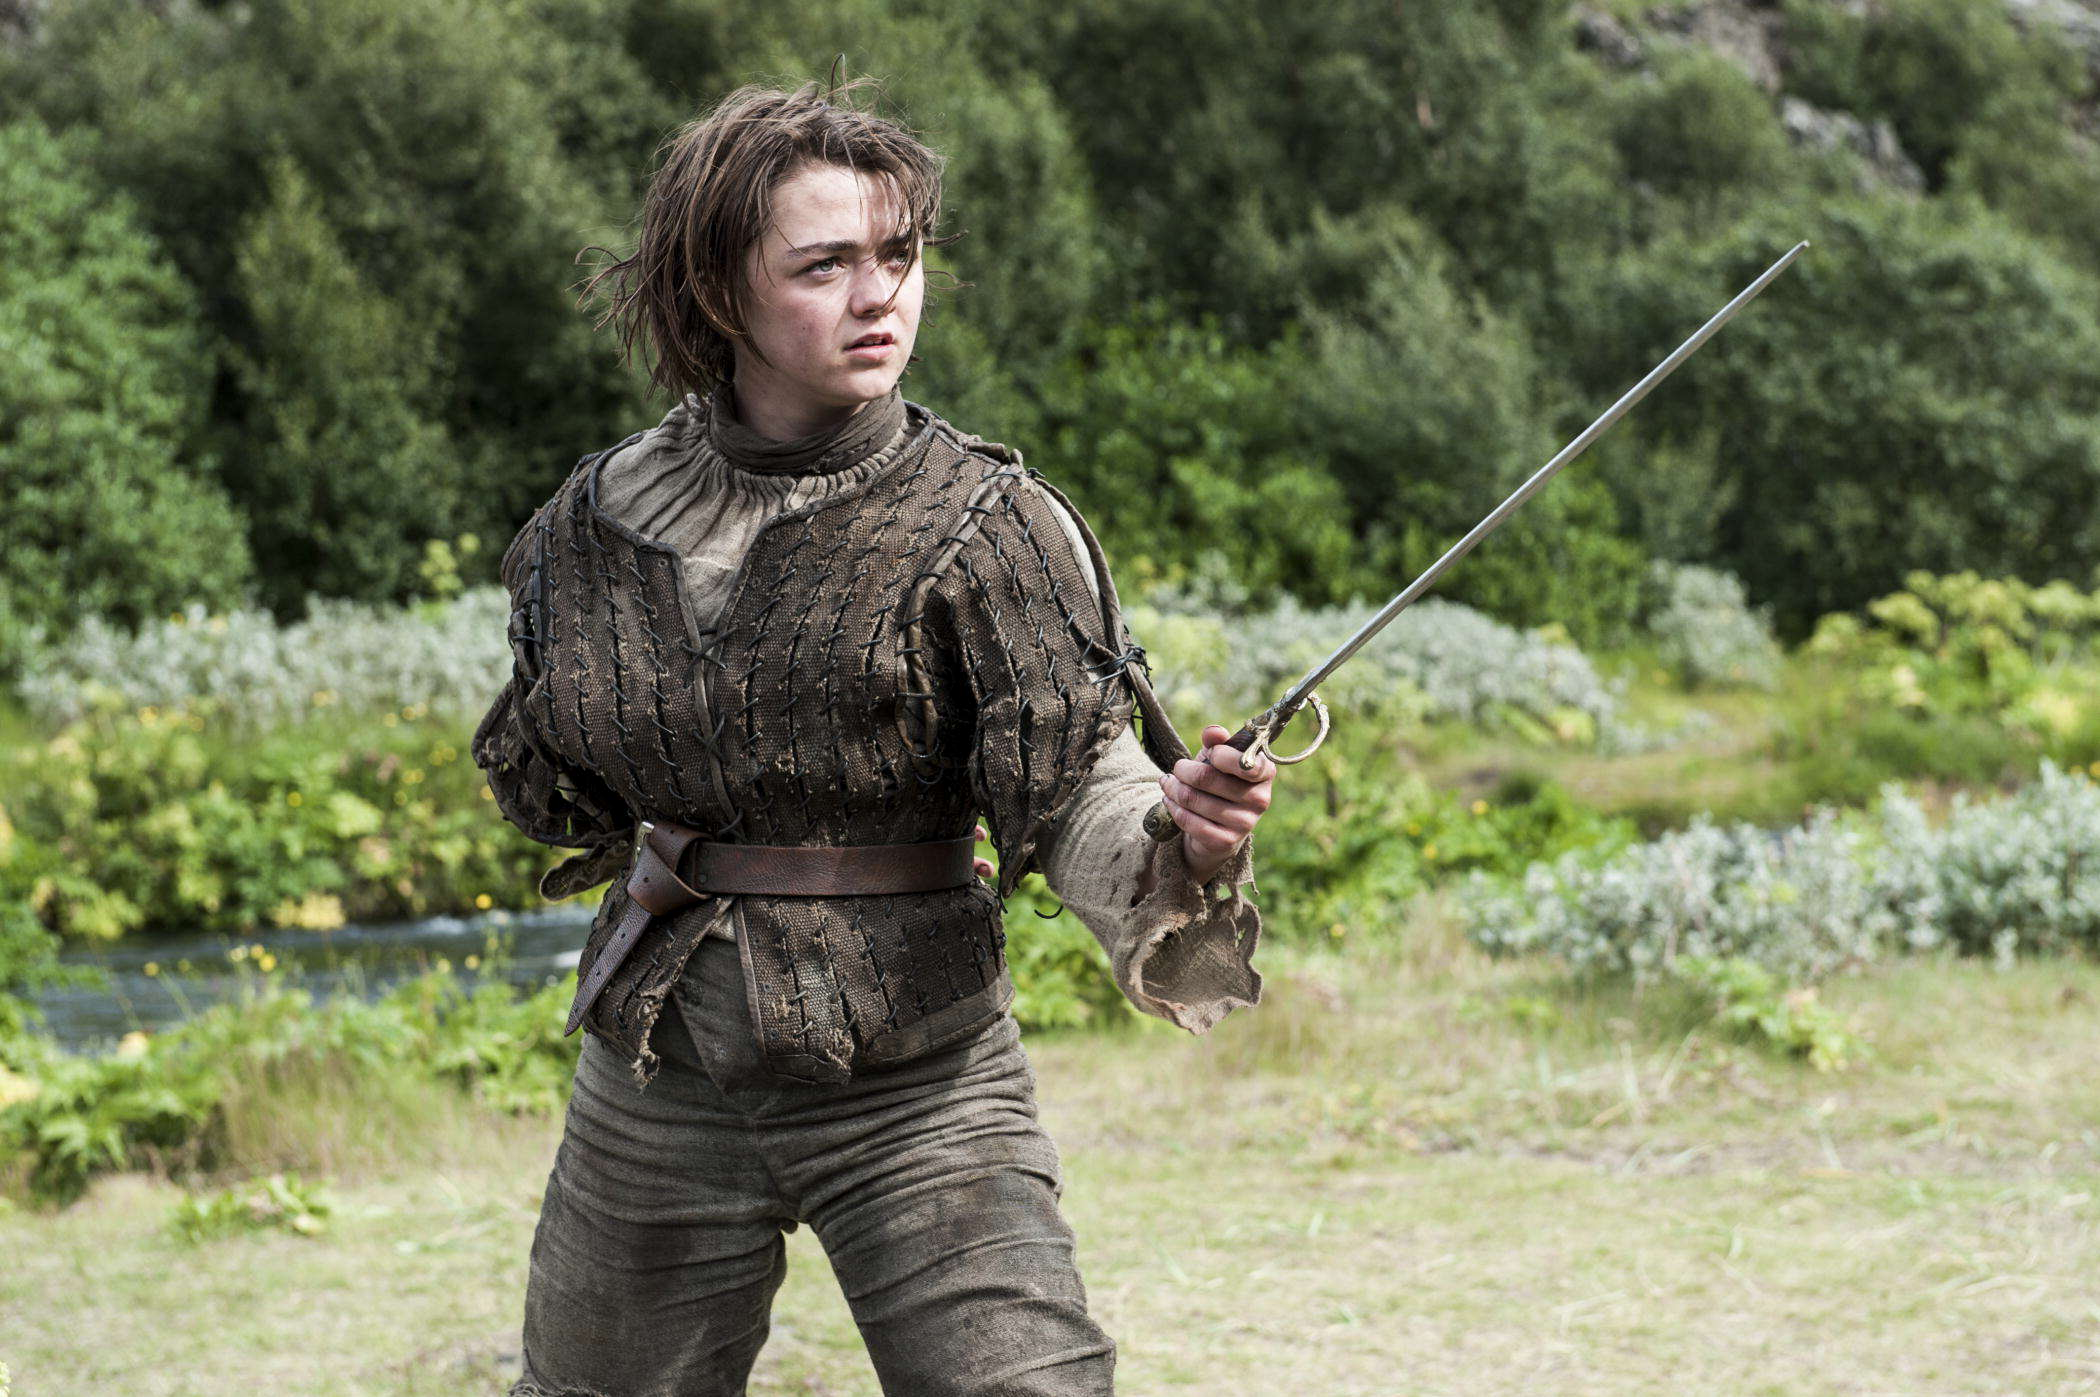 Arya Stark First of his Name Leaked Game Of Thrones Photo Hints At Major Characters Return